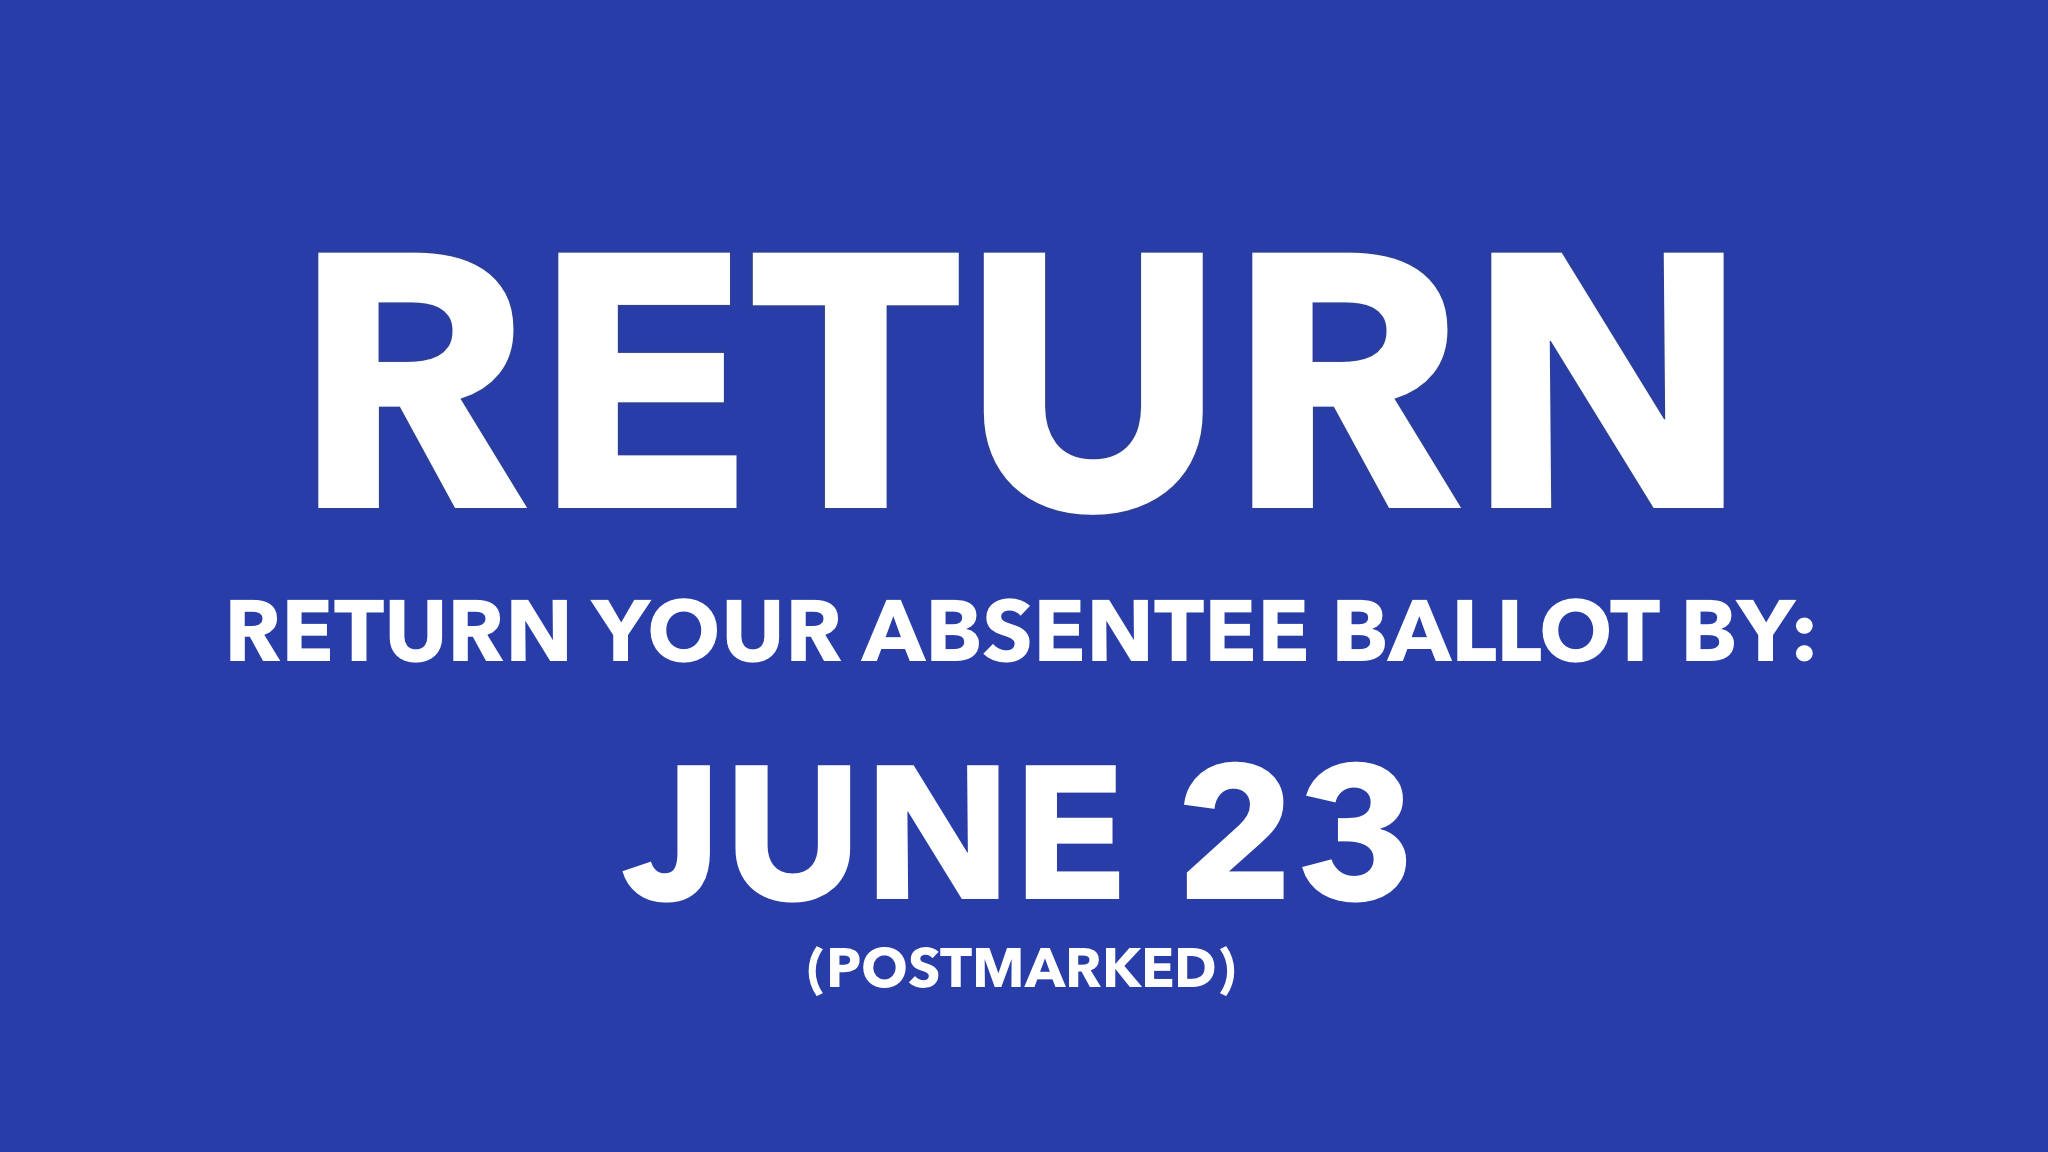 Return your Absentee Ballot by June 23 (Postmarked)